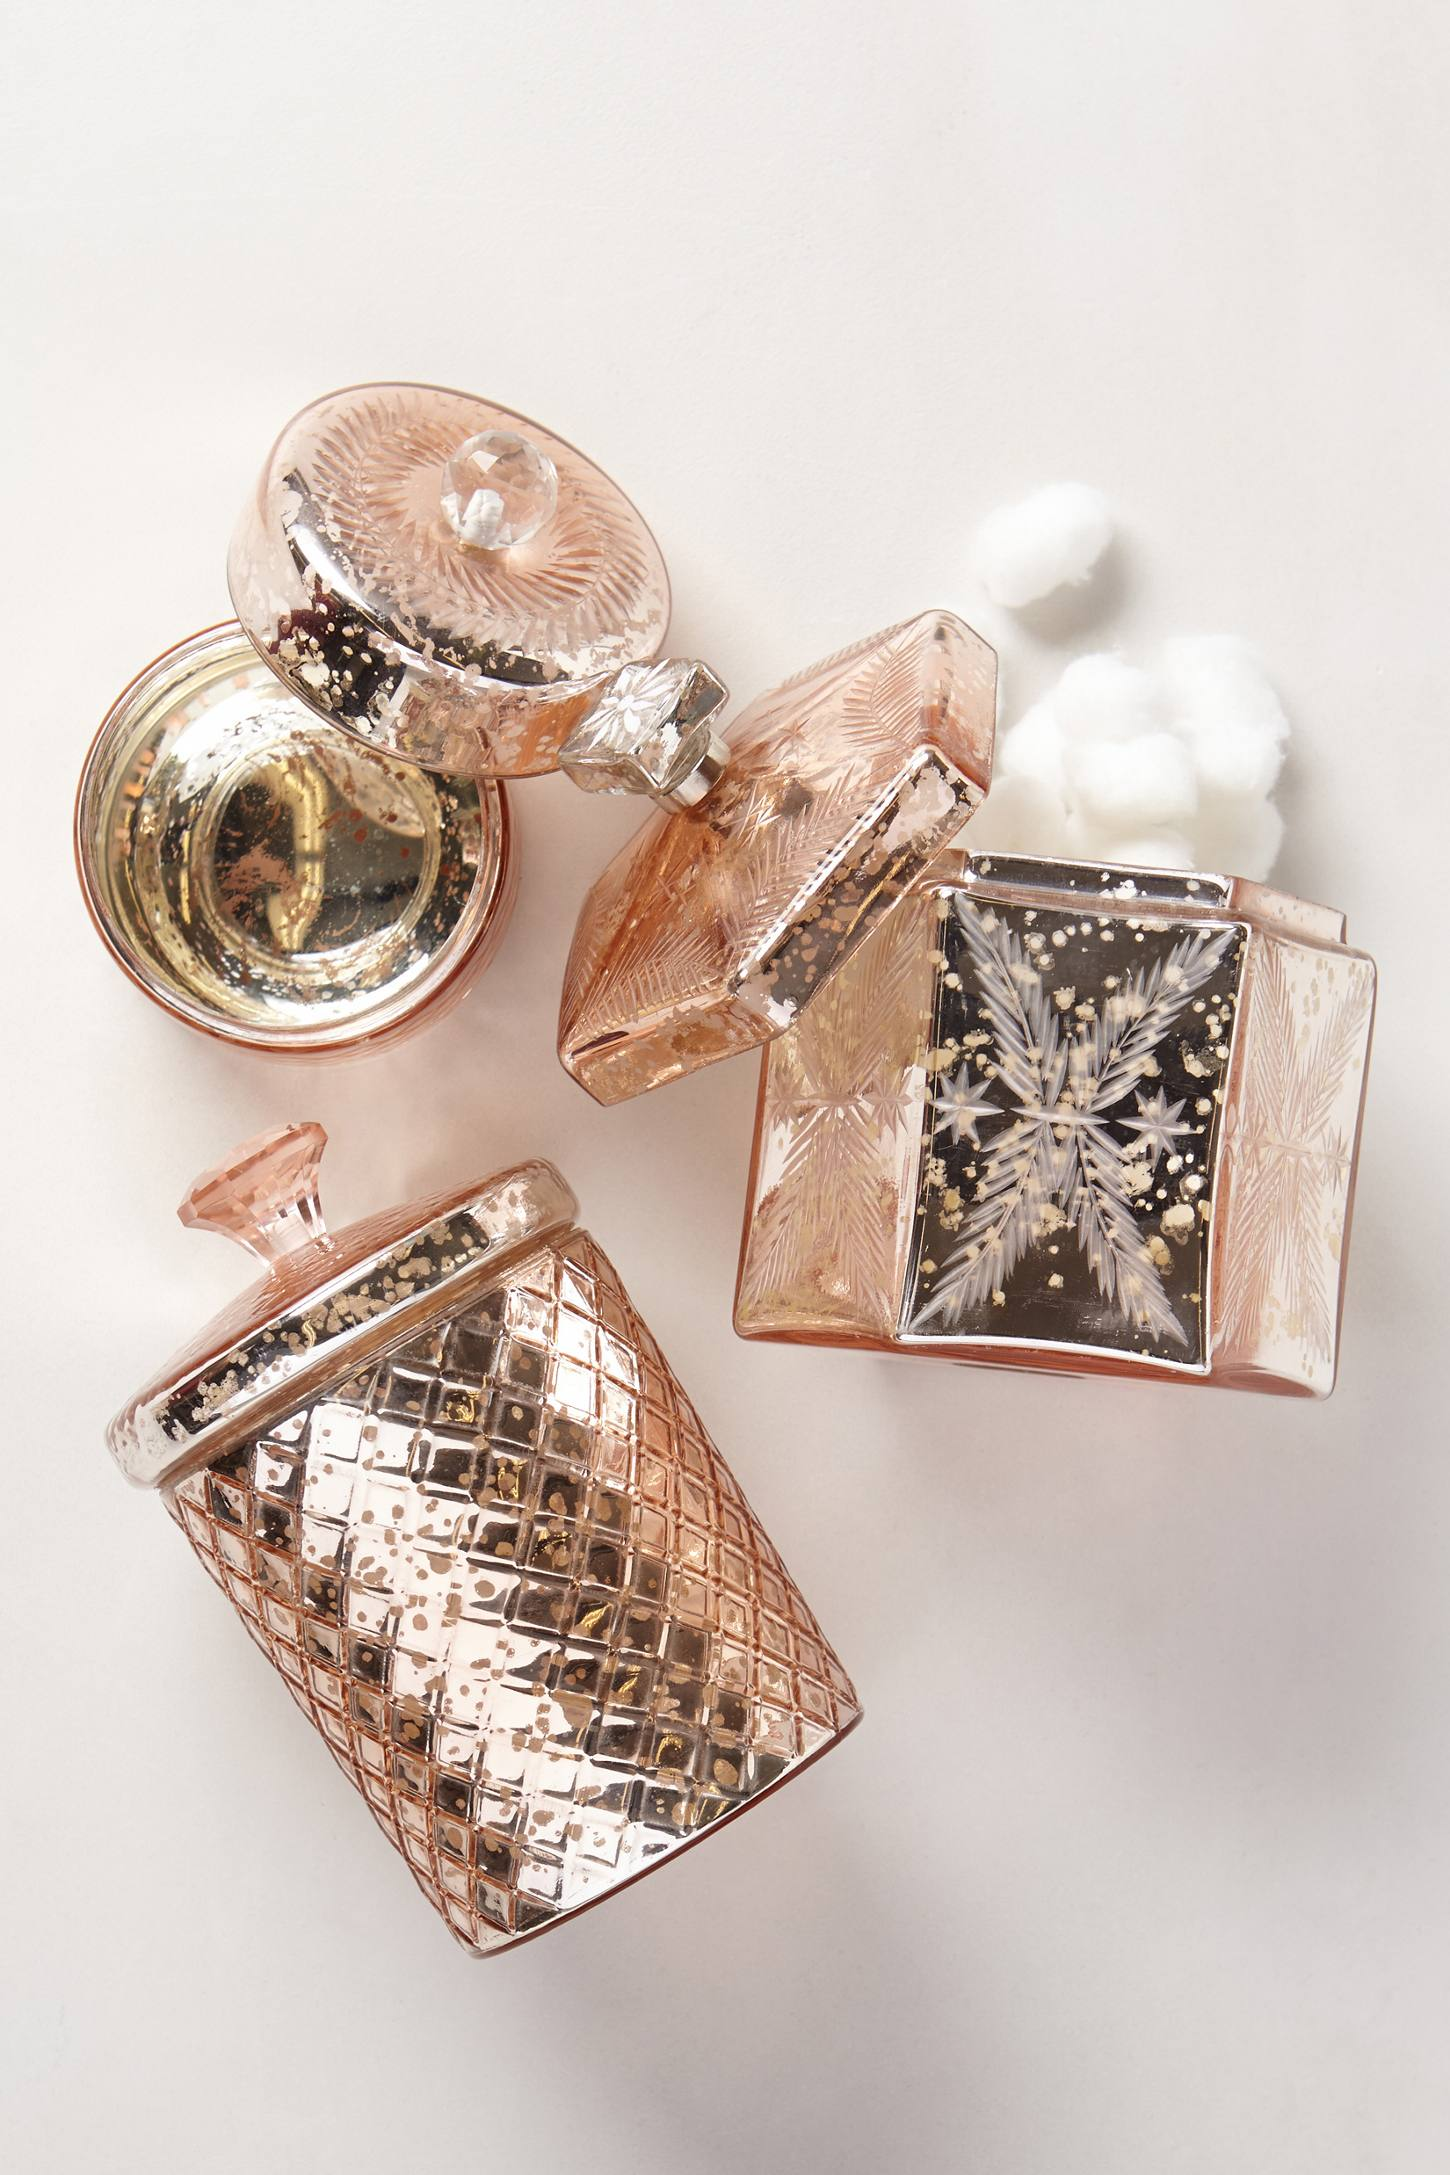 if you like to brighten up your day with a bit of rose gold see rose gold accessoriescopper bathroom - Gold Bathroom Accessories Uk